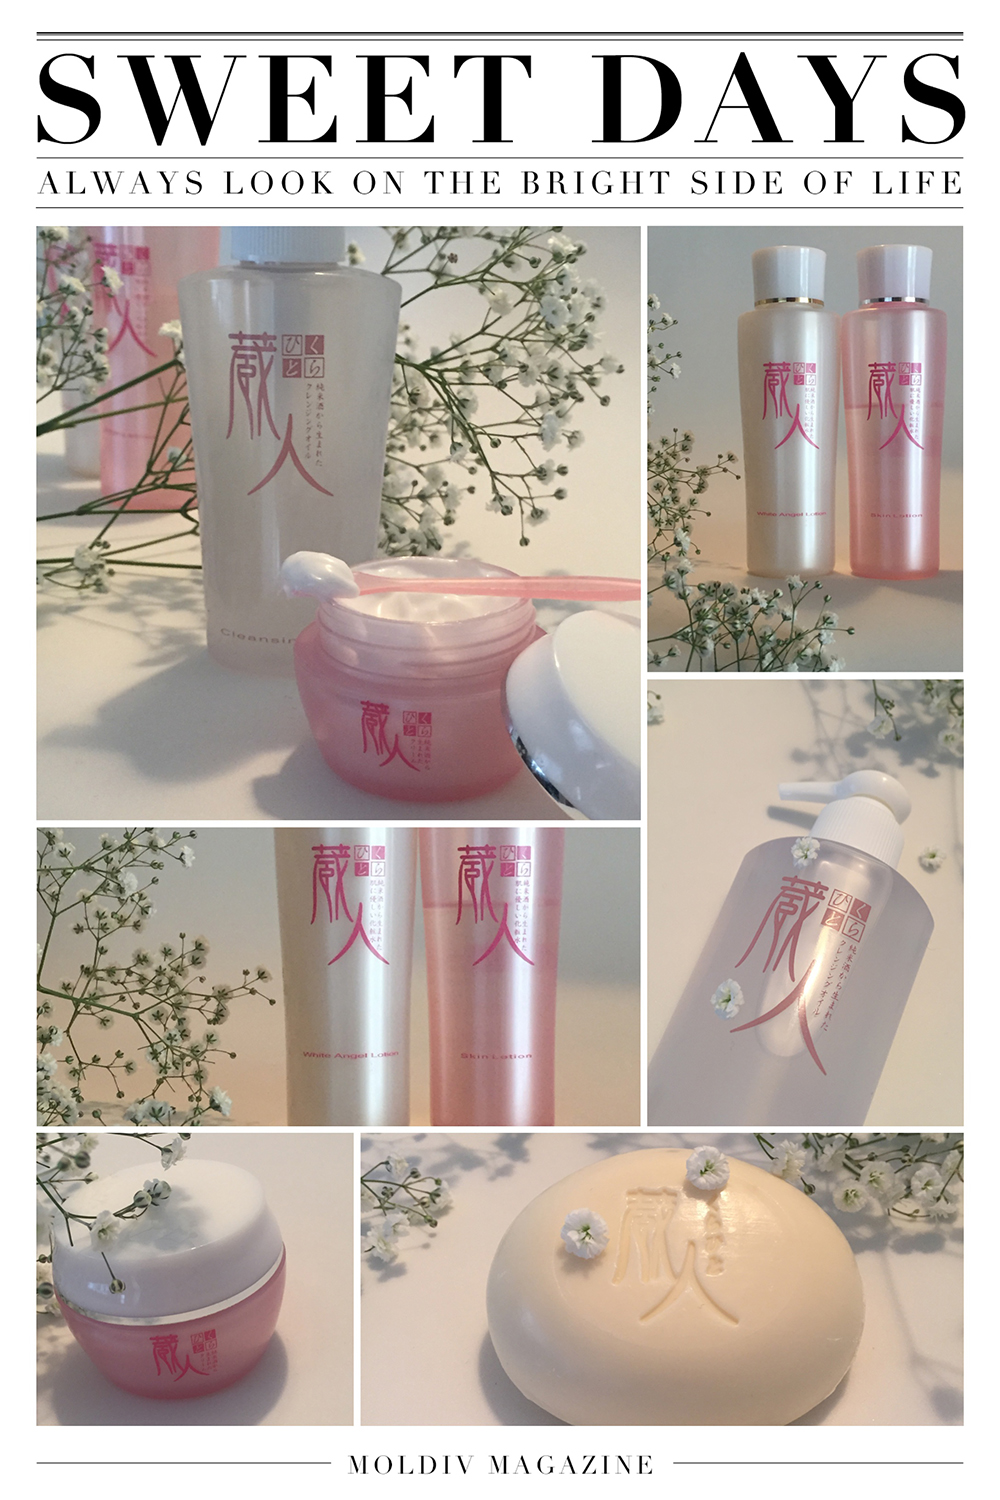 KURAHITO Skin White Collection